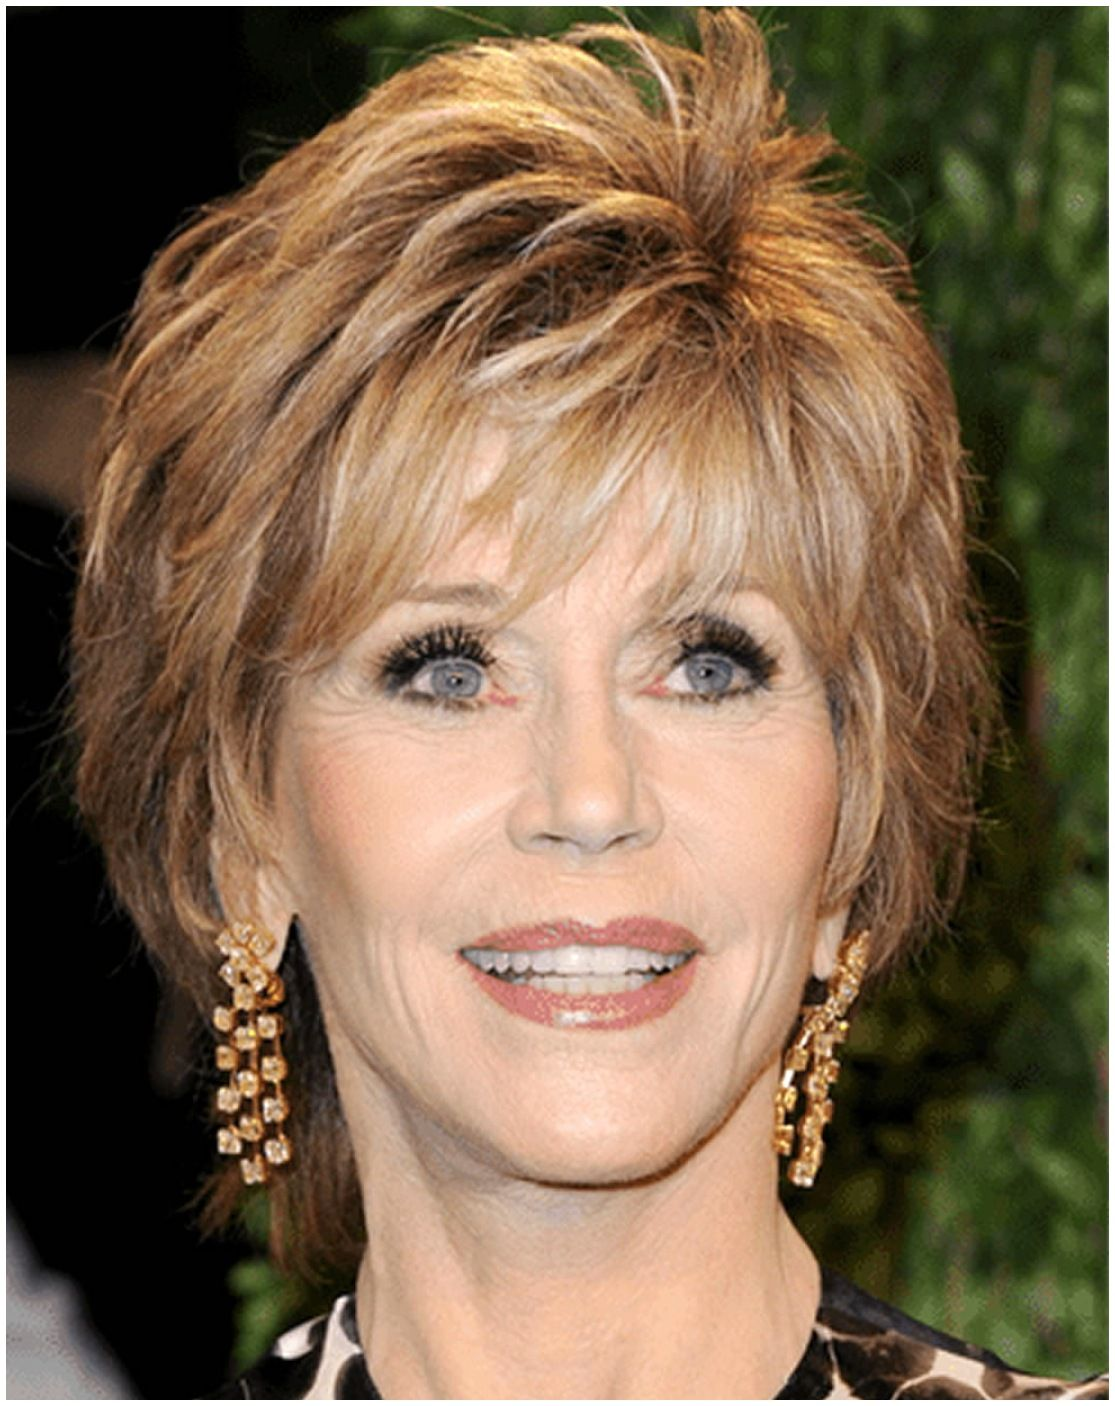 10 Short Hairstyles for Women Over 60 to Look Younger in 2021 7f14bb2e2fe6e4f98b1cd06865354c01